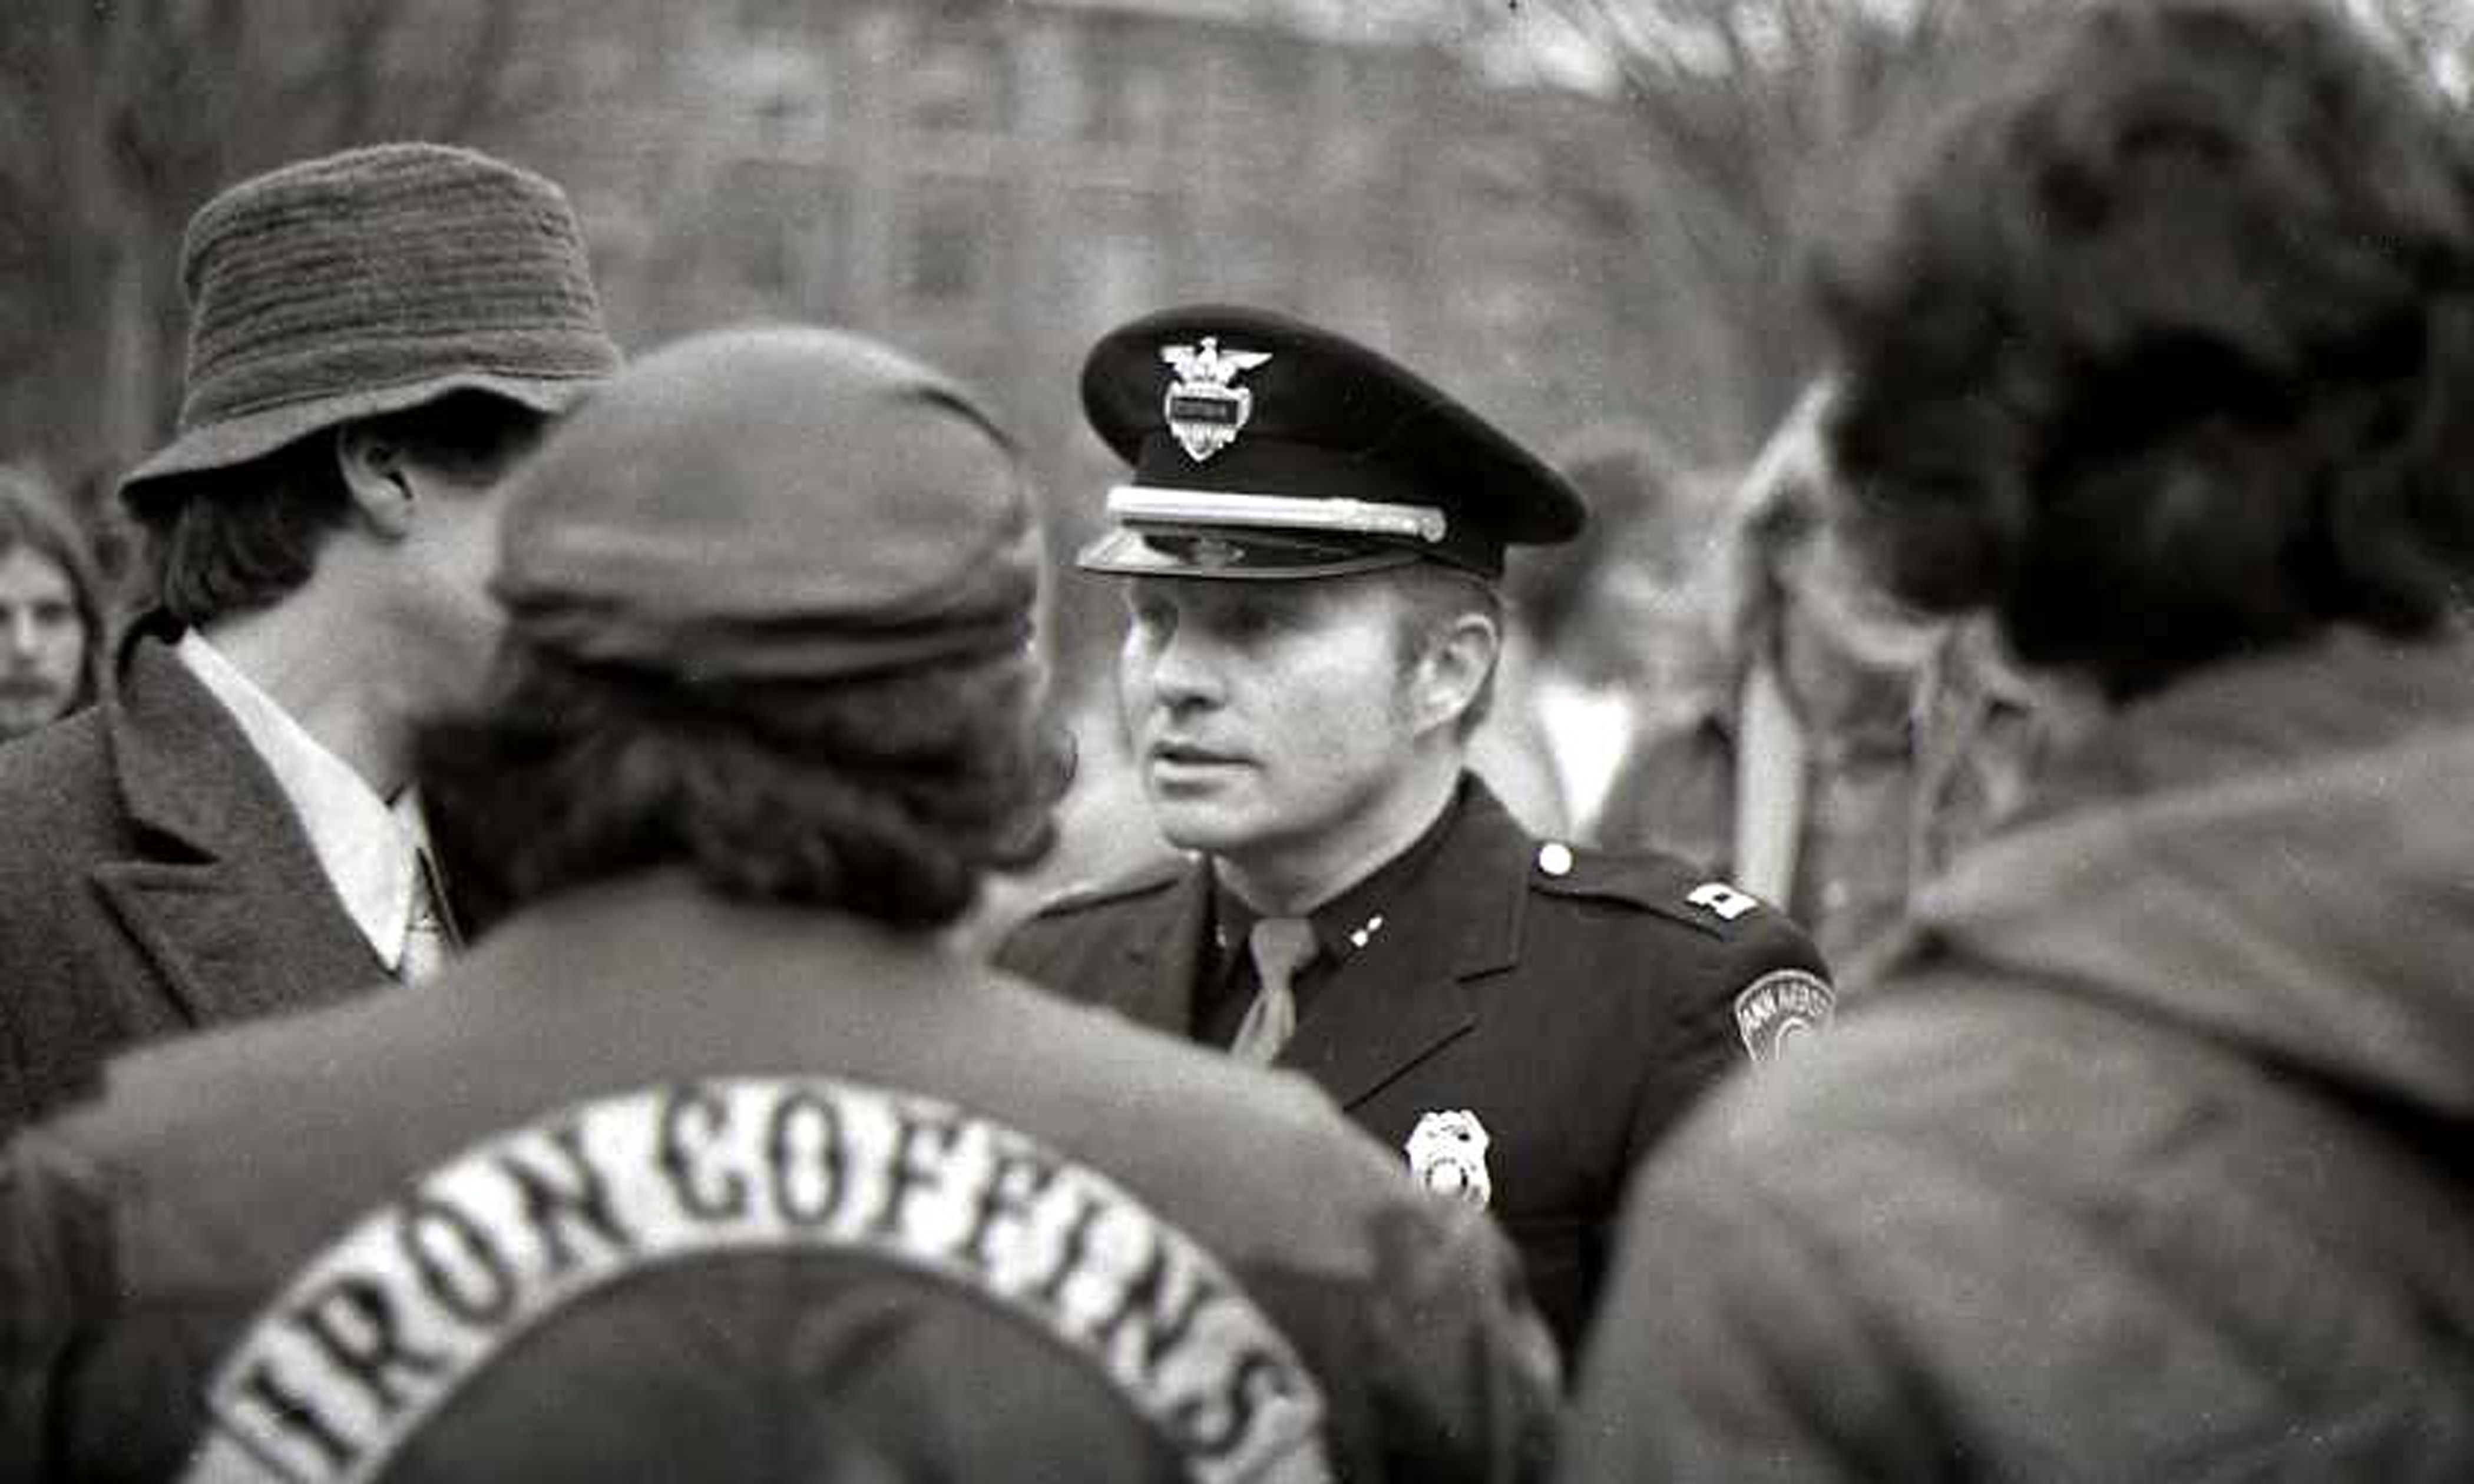 Police At Hash Bash, 1977 image